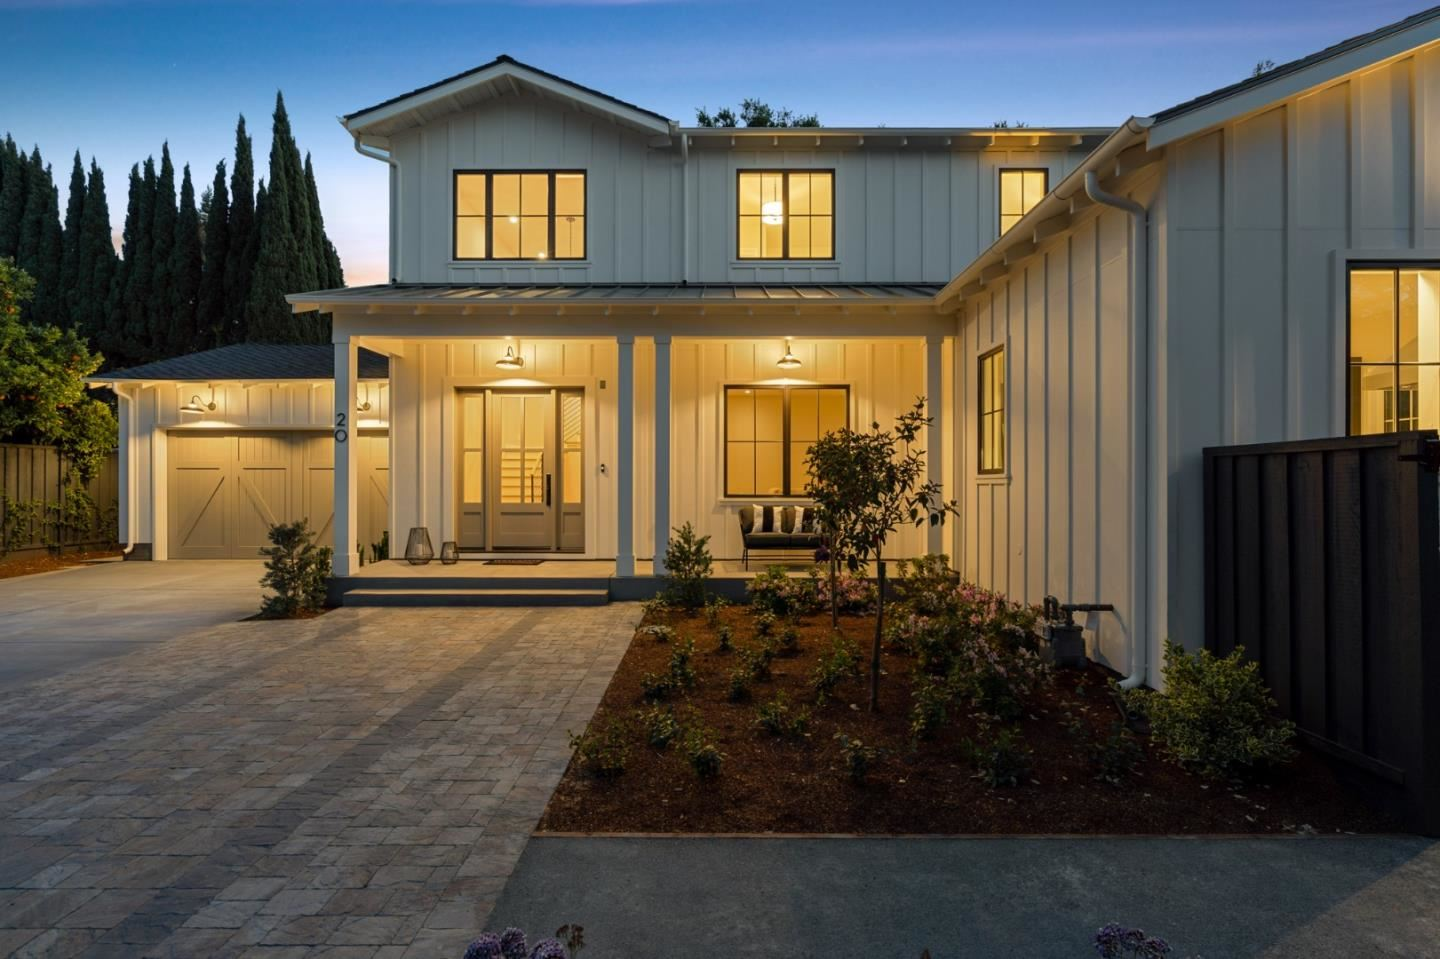 20 Cocco Lane, Redwood City, CA 94061 - #: ML81841422